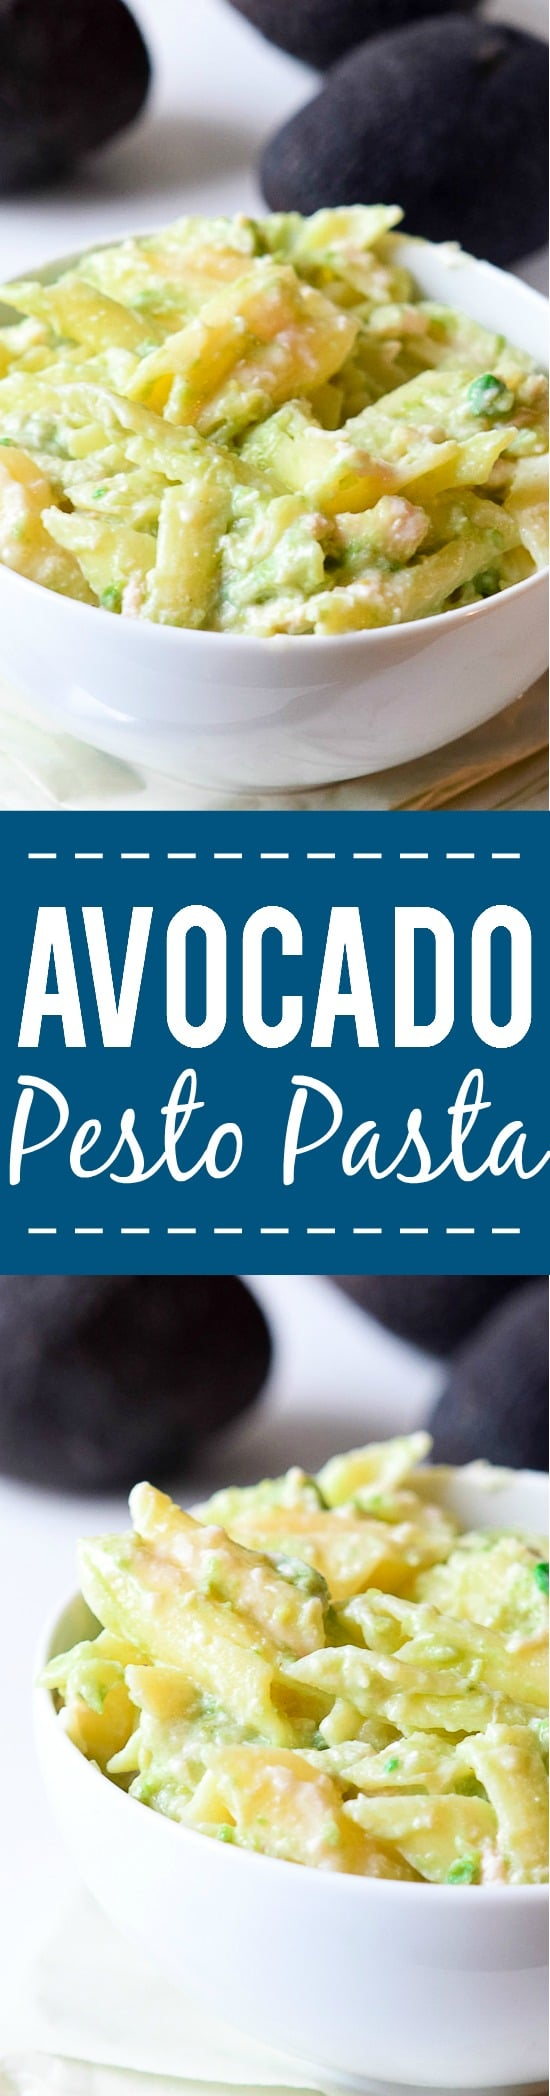 Avocado Pesto Pasta Recipe -Easy and fresh, this Avocado Pesto Pasta is perfect for warm weather, made with fresh basil, tangy lime, creamy avocado and a sprinkle of Parmesan in just 20 minutes!